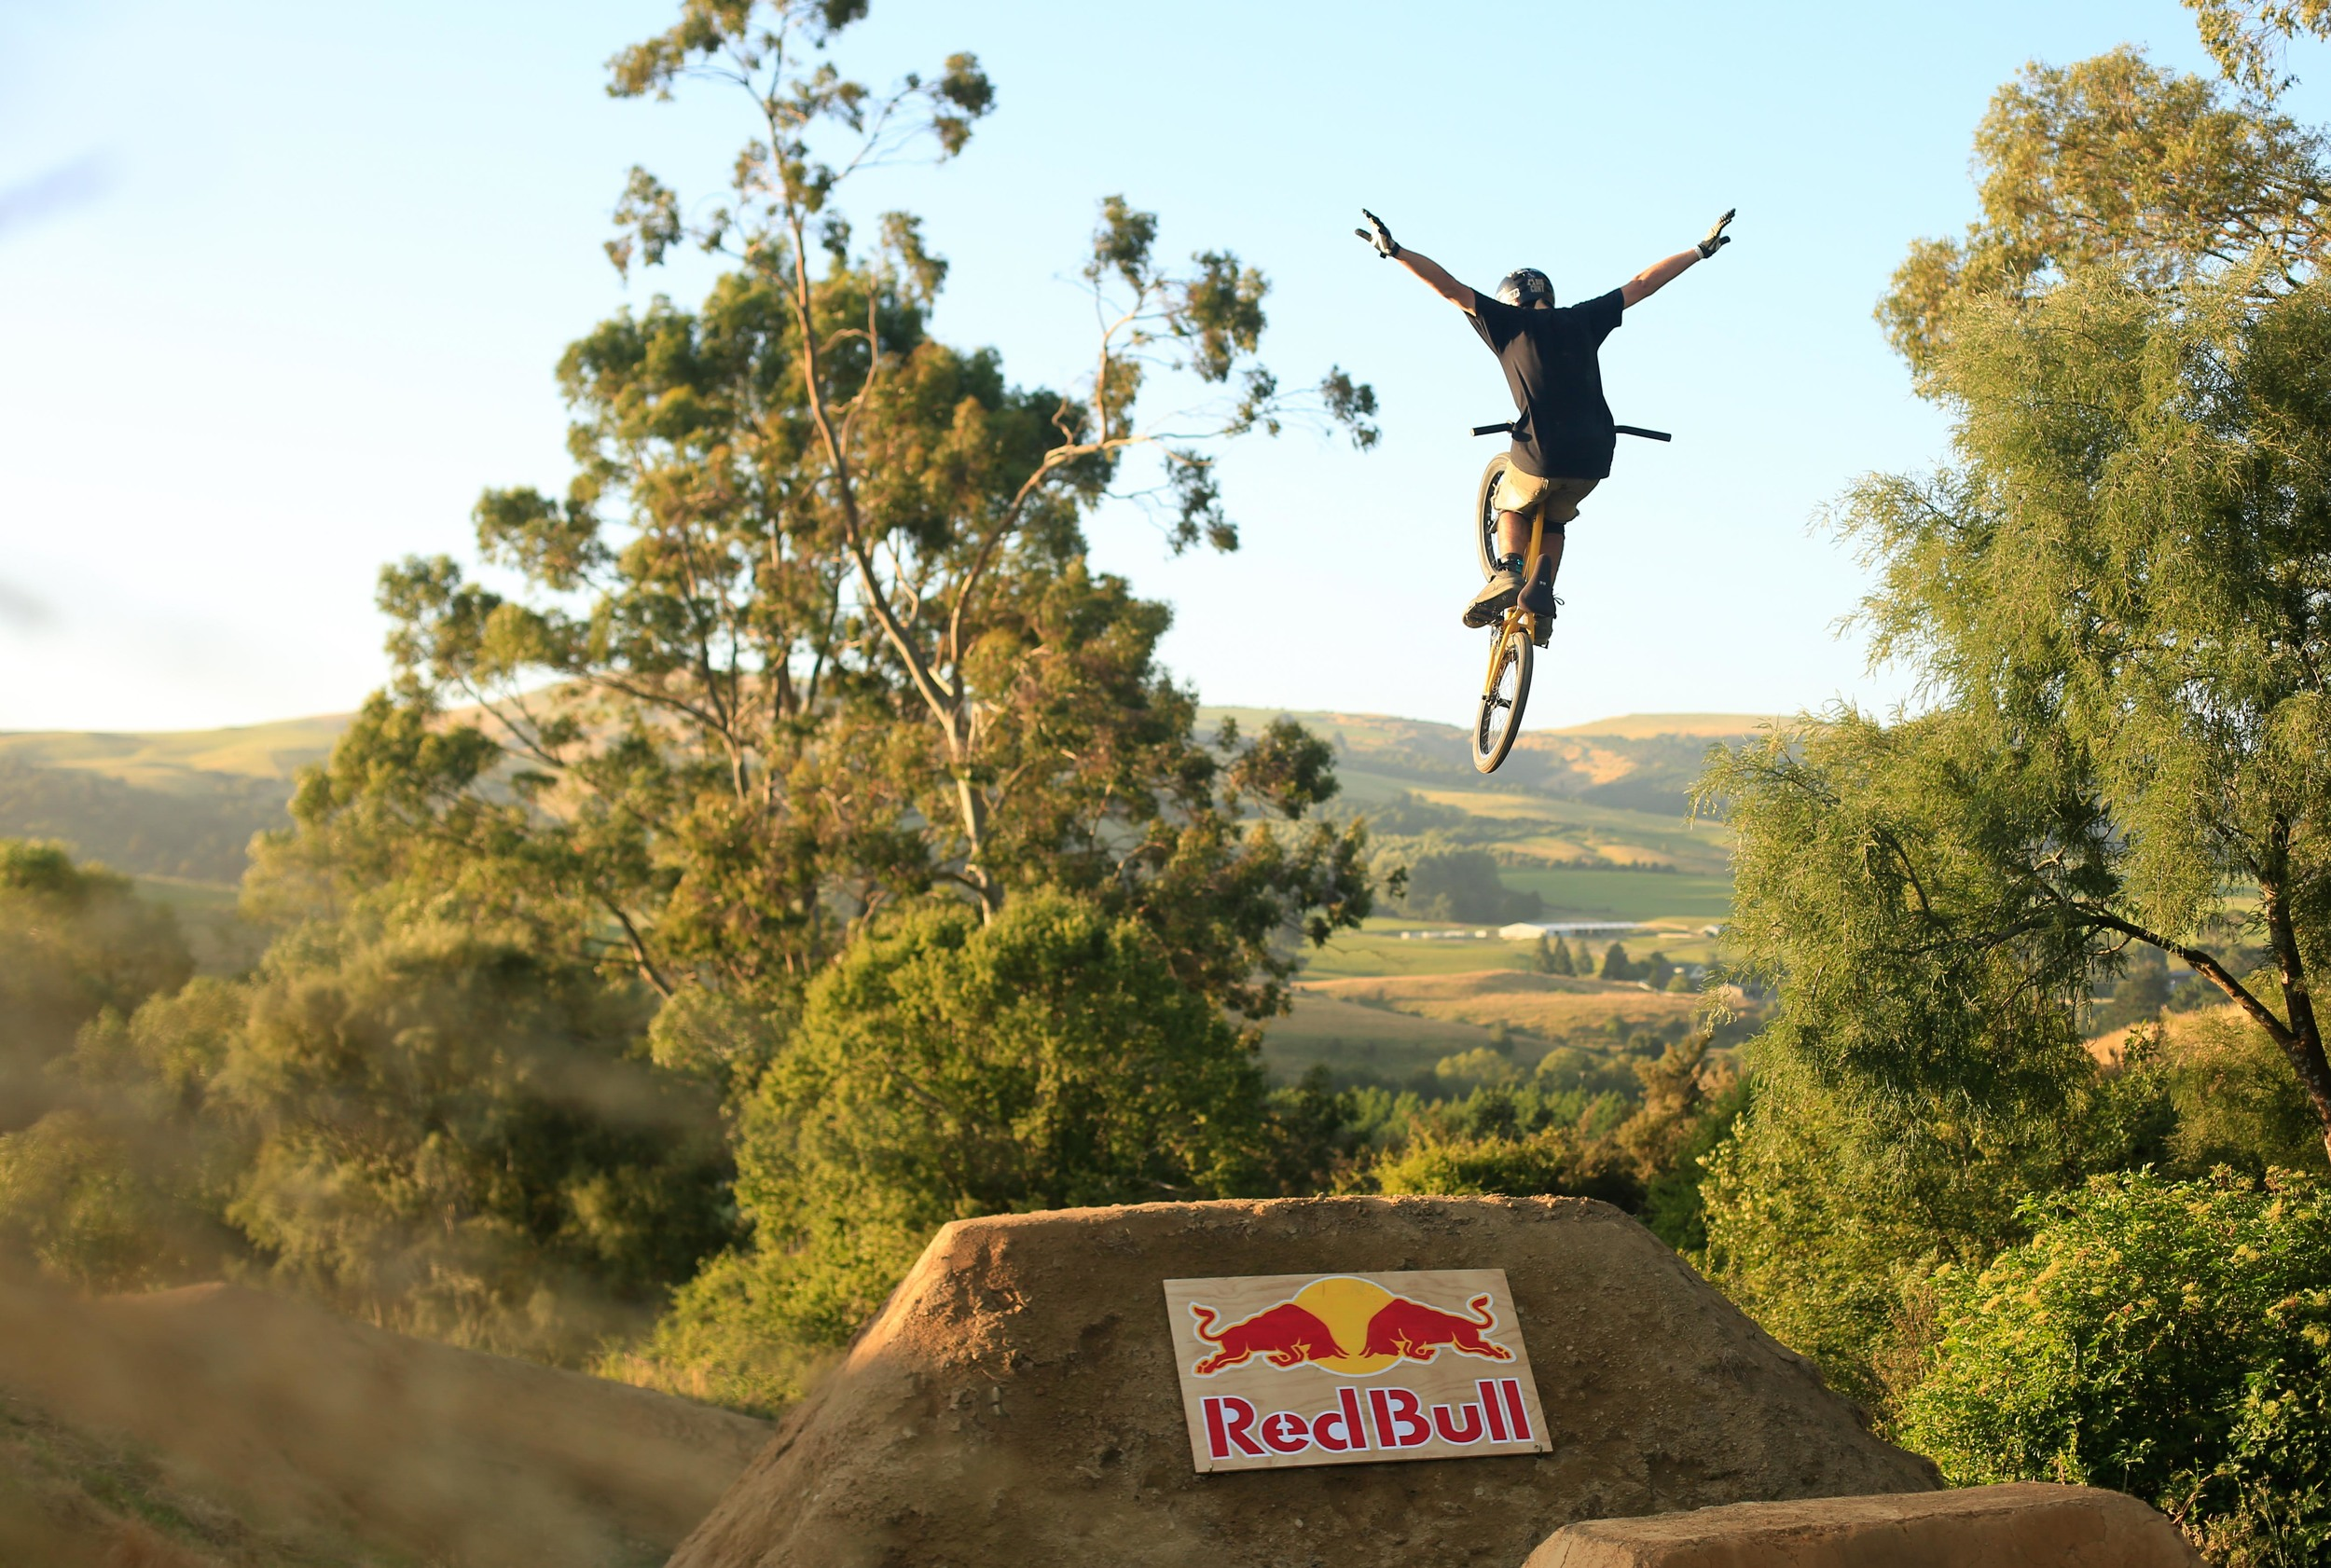 "Red Bull was the major Sponsor of the event, bringing some of the top BMX riders from around the world to the event, including Mike ""Hucker"" Clark, Kris Fox and Jayden Leeming. Red Bull also brought long their awesome Hummer with a DJ set-up in the back."